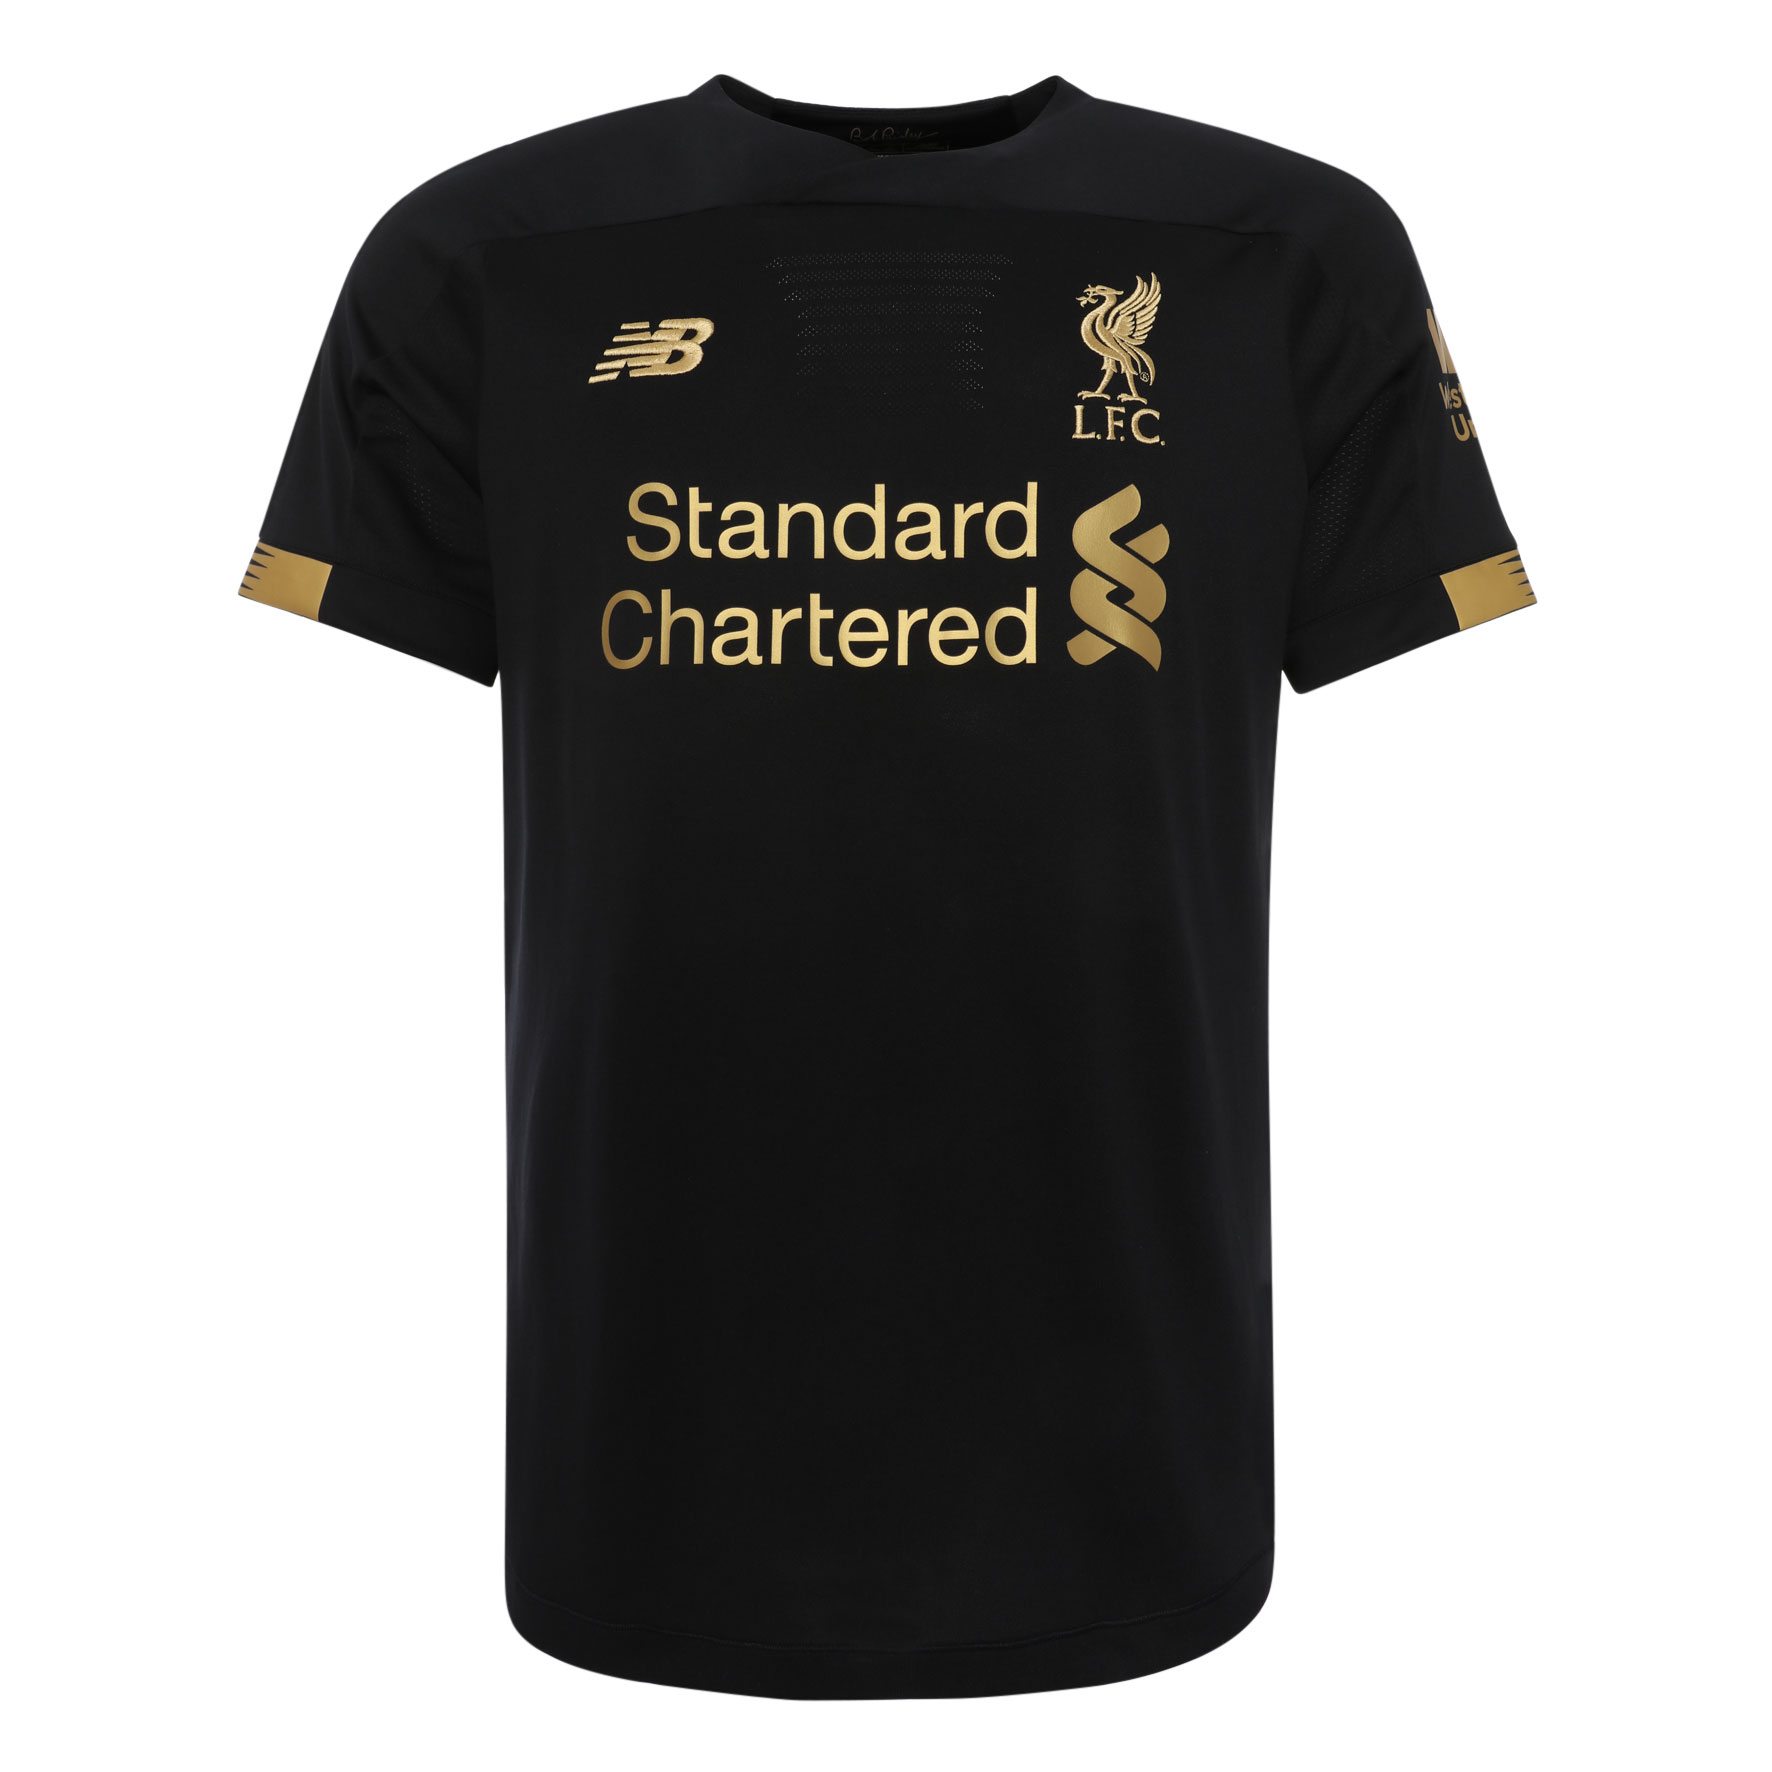 403ddb205 Liverpool s 2019-20 home kit revealed - pre-order now - Liverpool FC